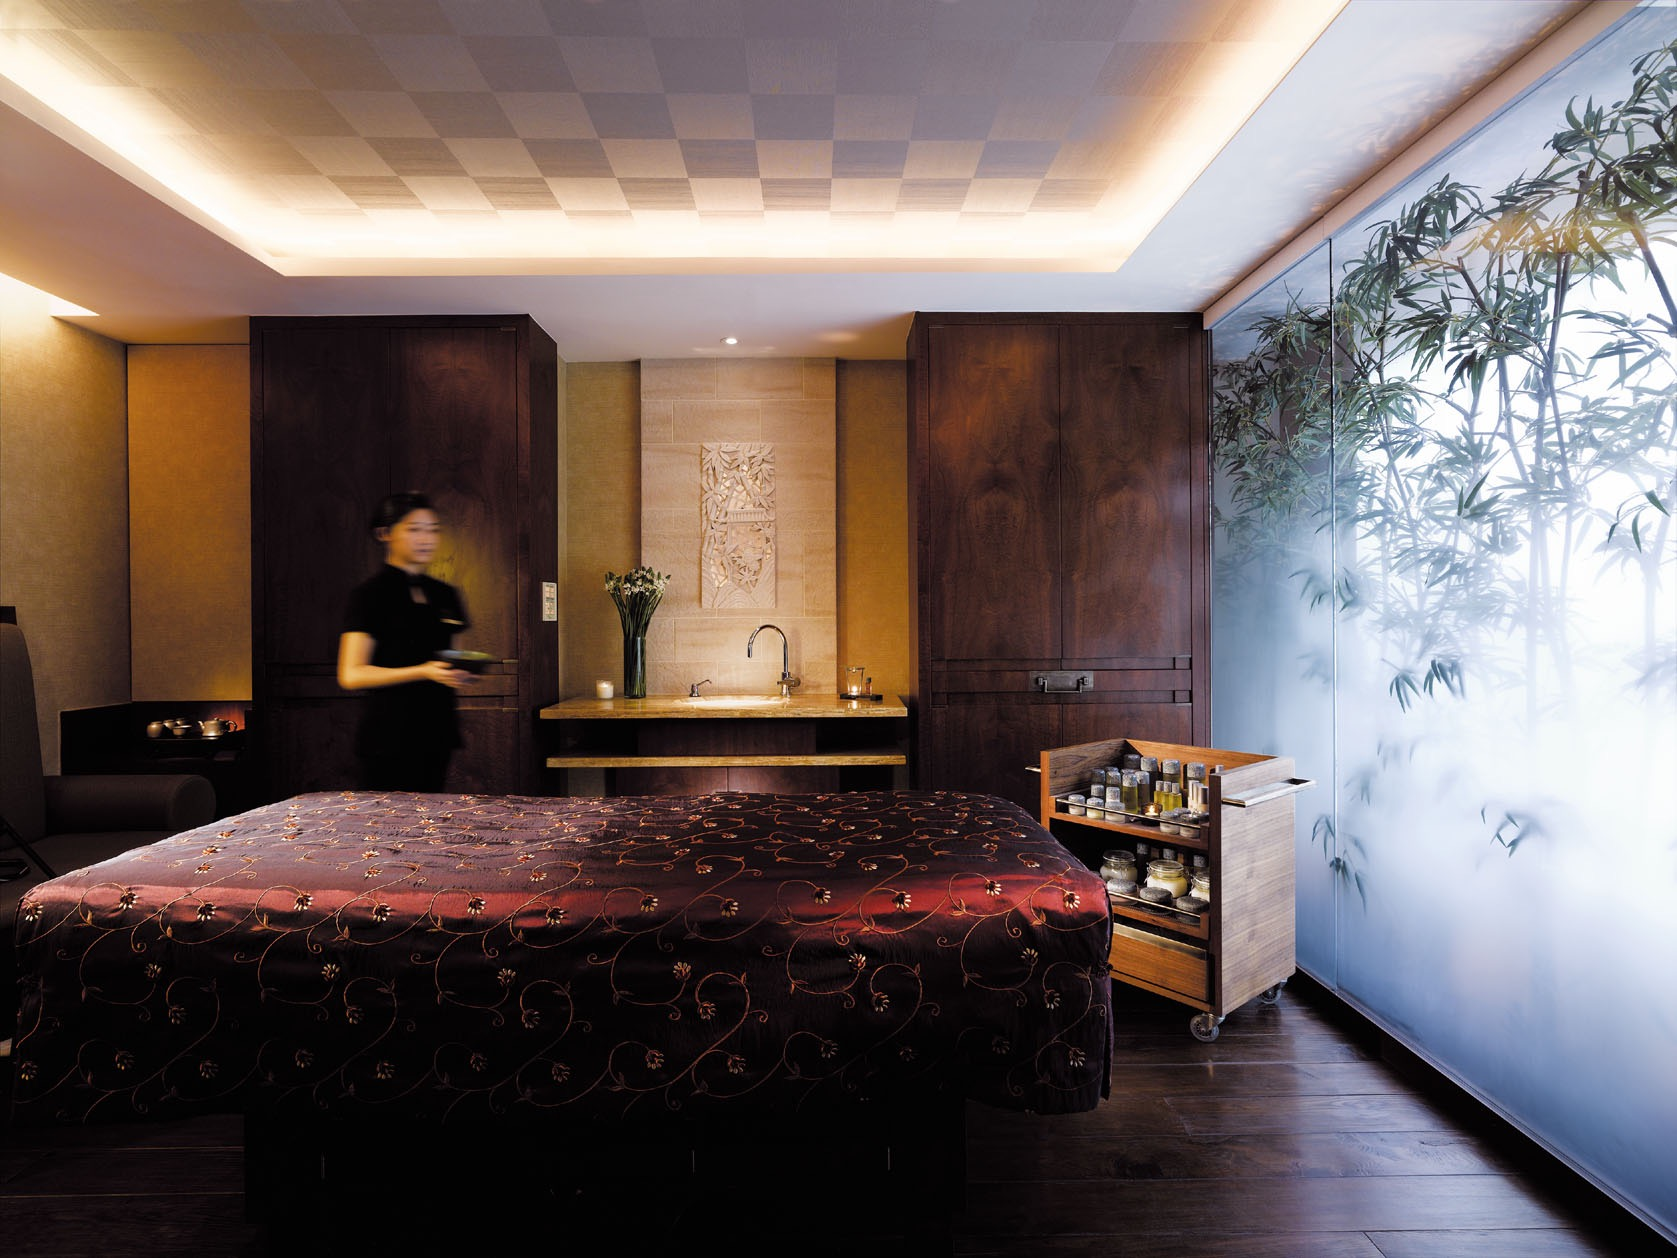 SPA @ PENINSULA HOTEL, HONG KONG